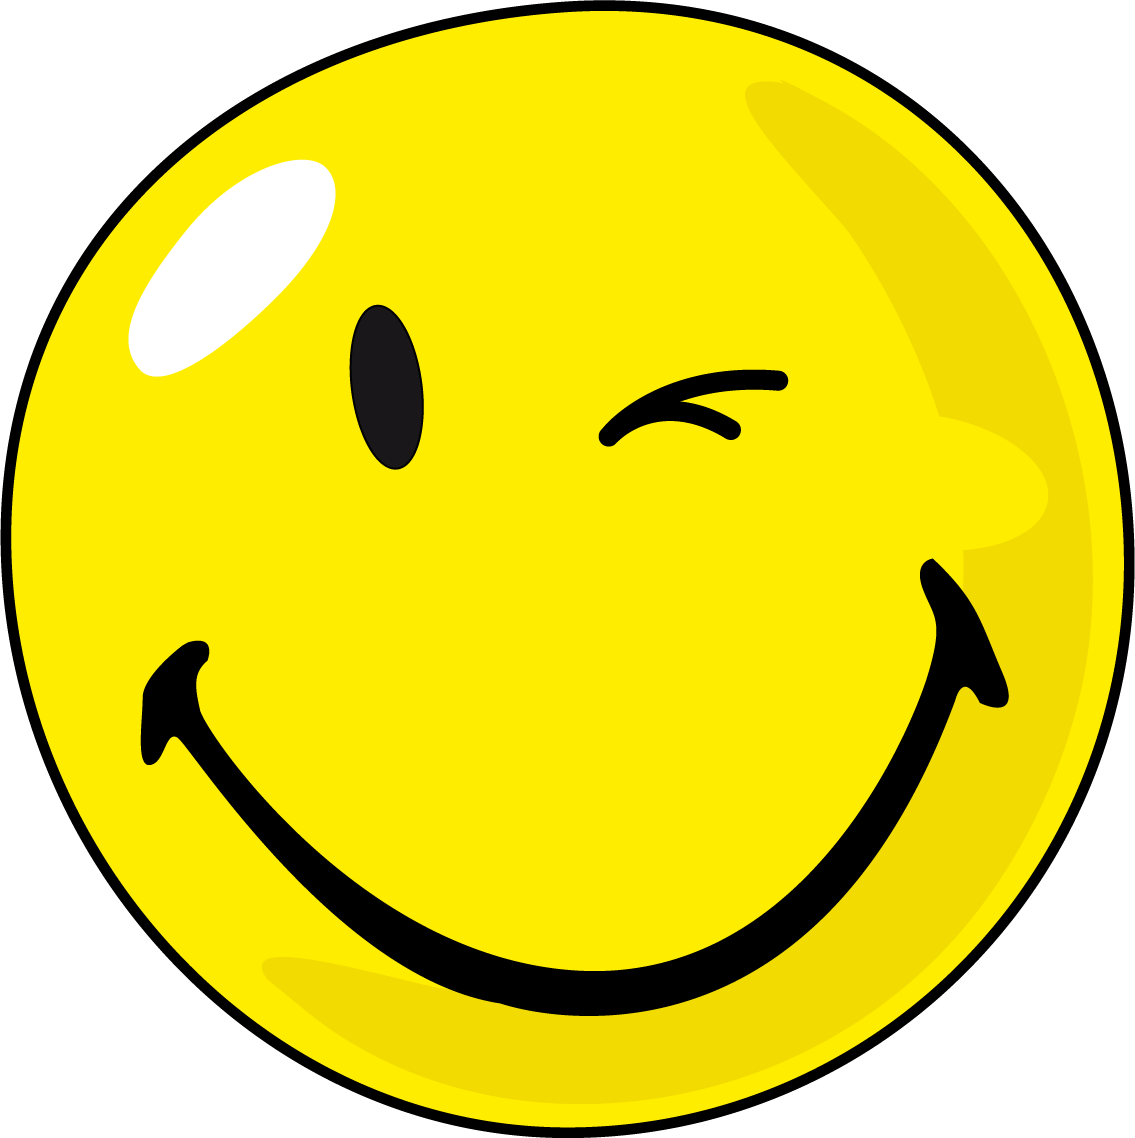 Ok face clipartly comclipartly. Smiley clipart phone